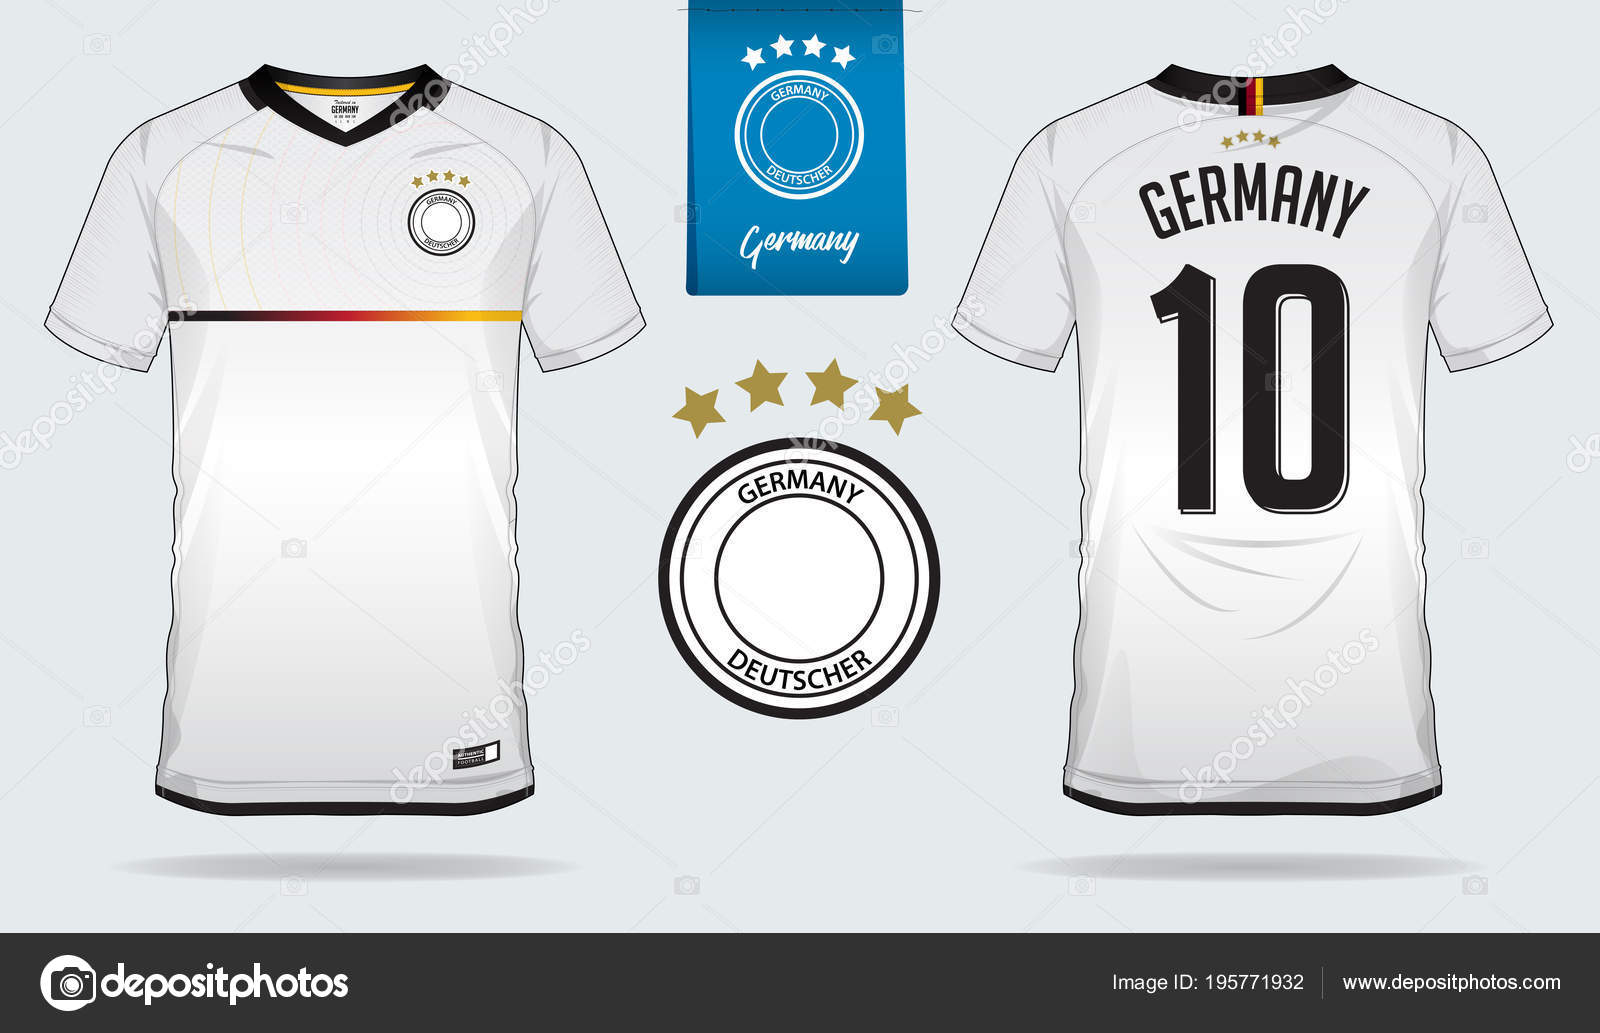 a29f44195 Set of soccer jersey or football kit template design for Germany national  football team. Front and back view soccer uniform. Football t shirt mock up.